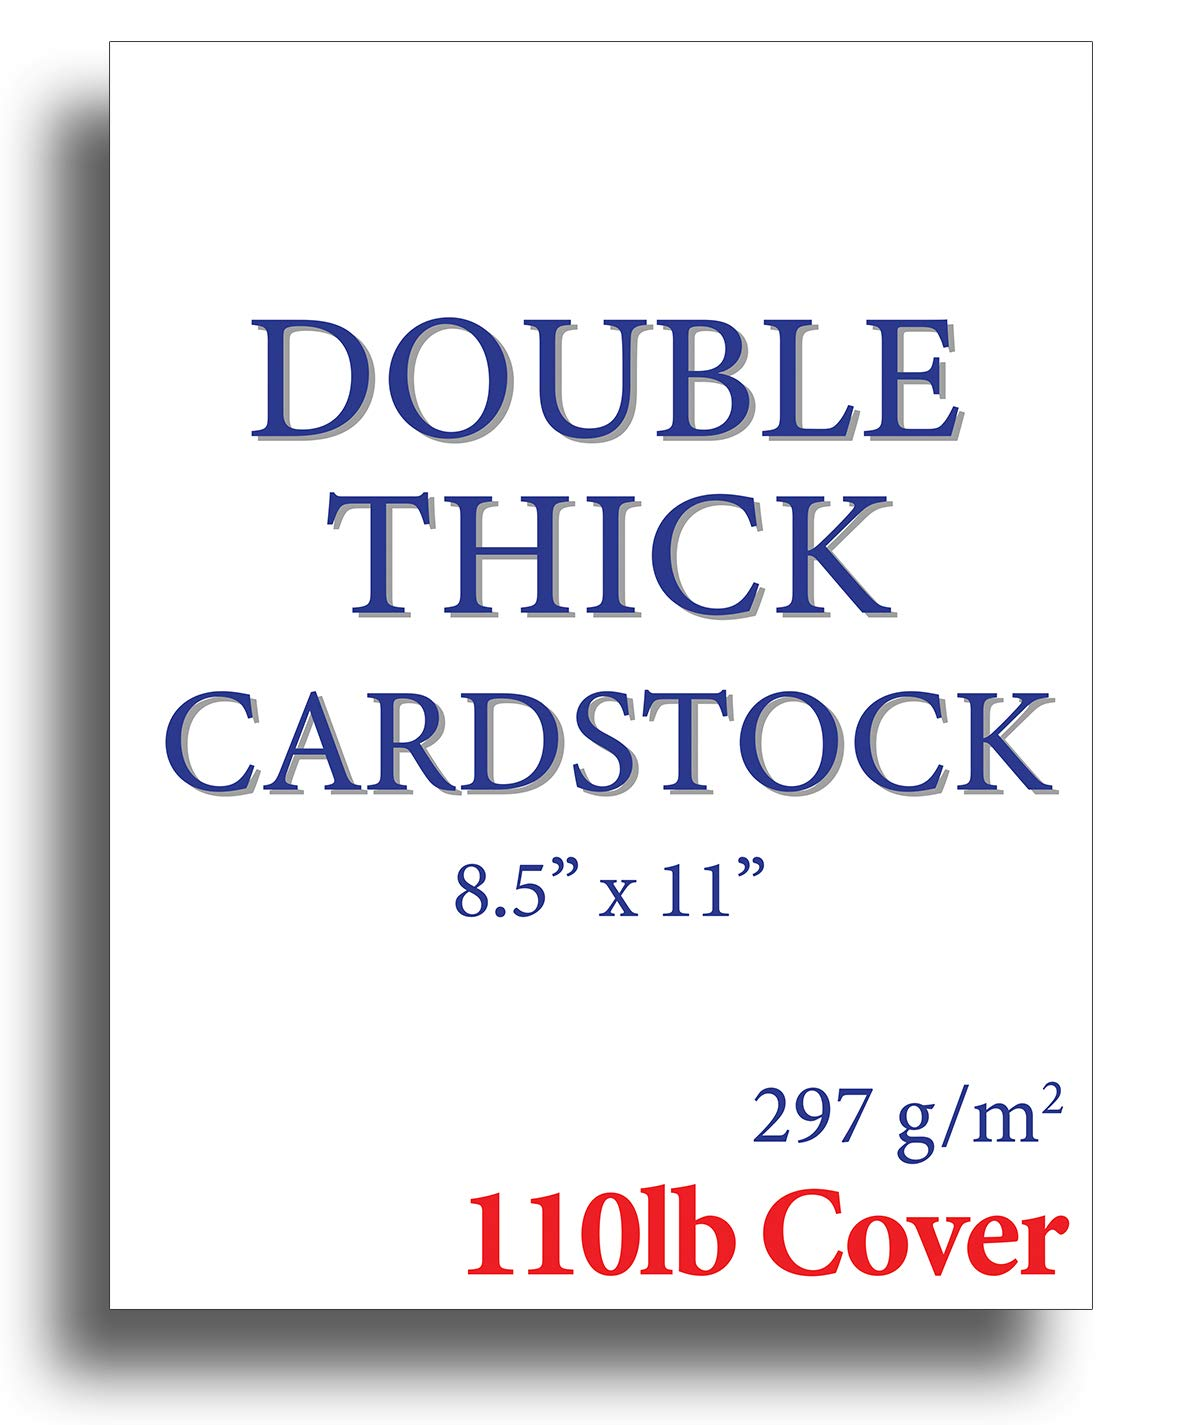 110lb Cover Ultra Heavyweight Double Thick Cardstock - Bright White - 8.5'' x 11'' - For Inkjet/Laser Printers (200 Sheets)